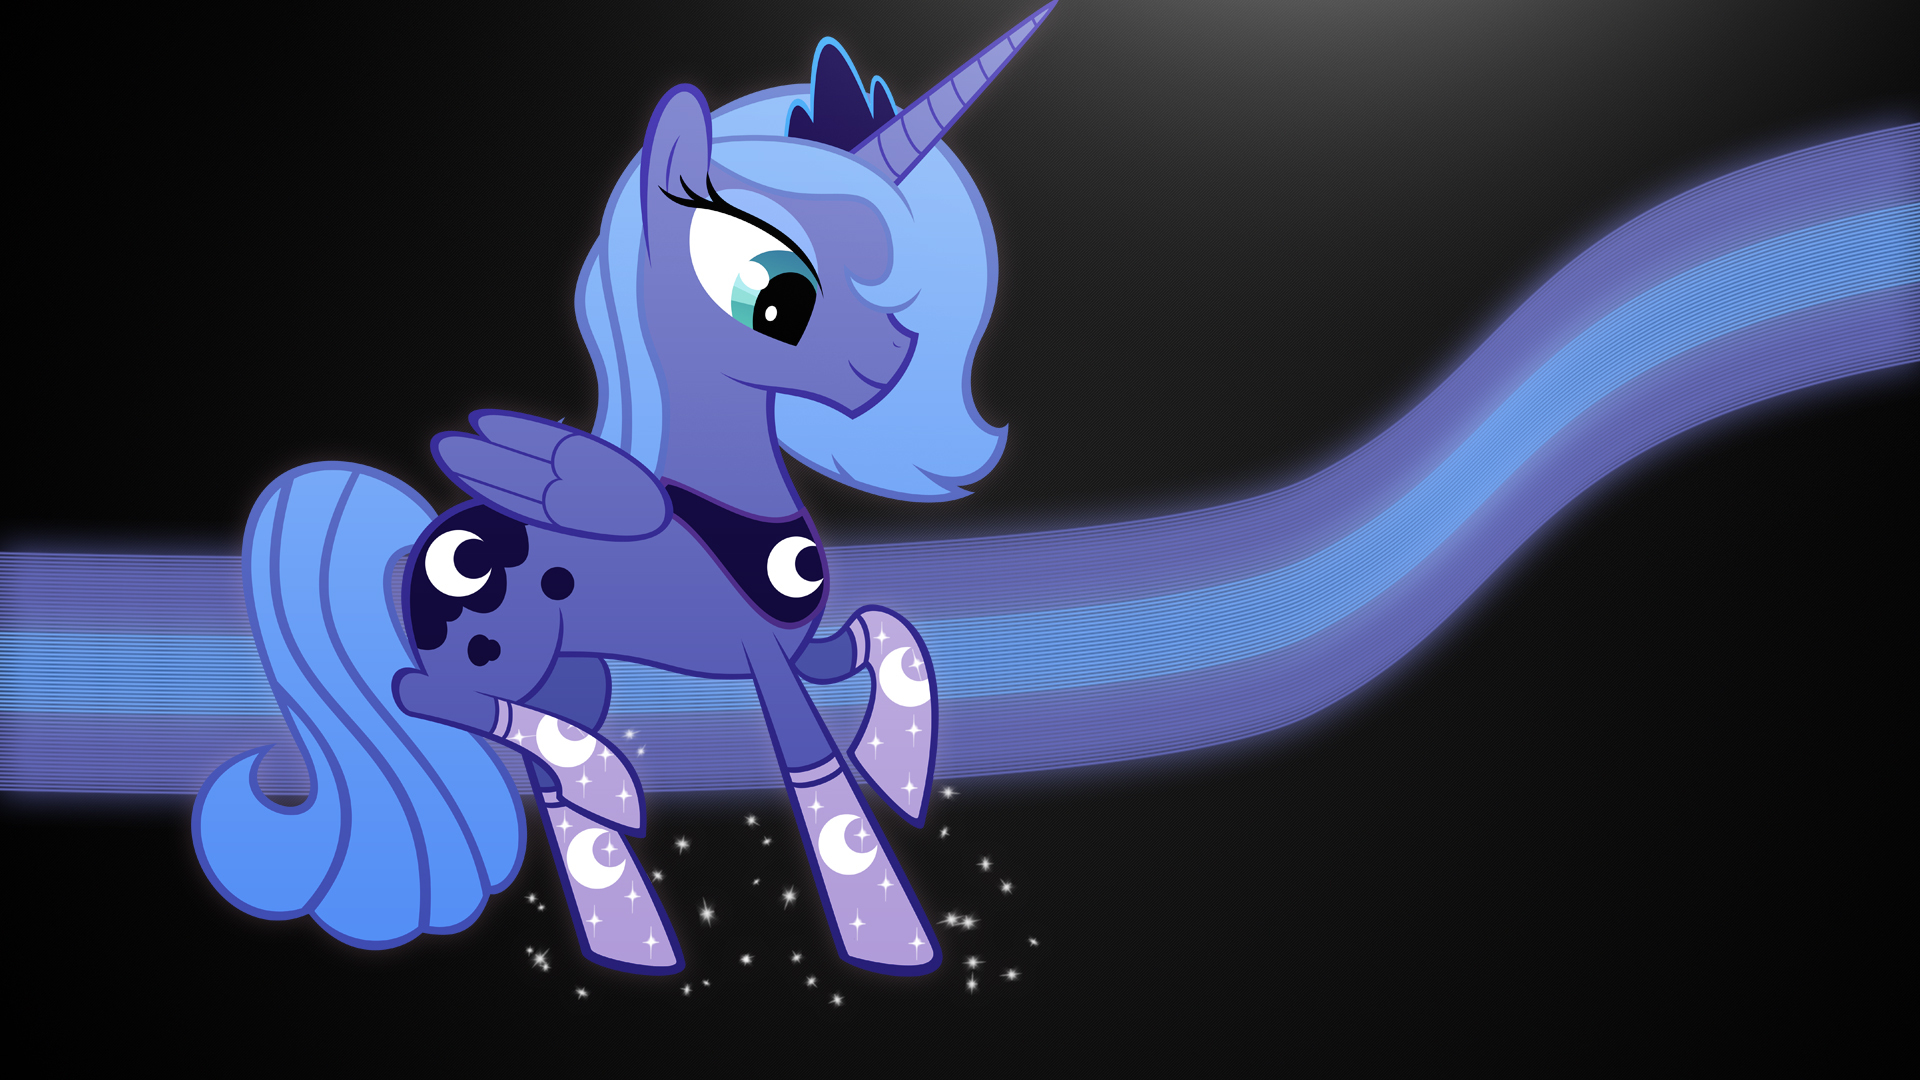 princess luna images princess luna hd wallpaper and background